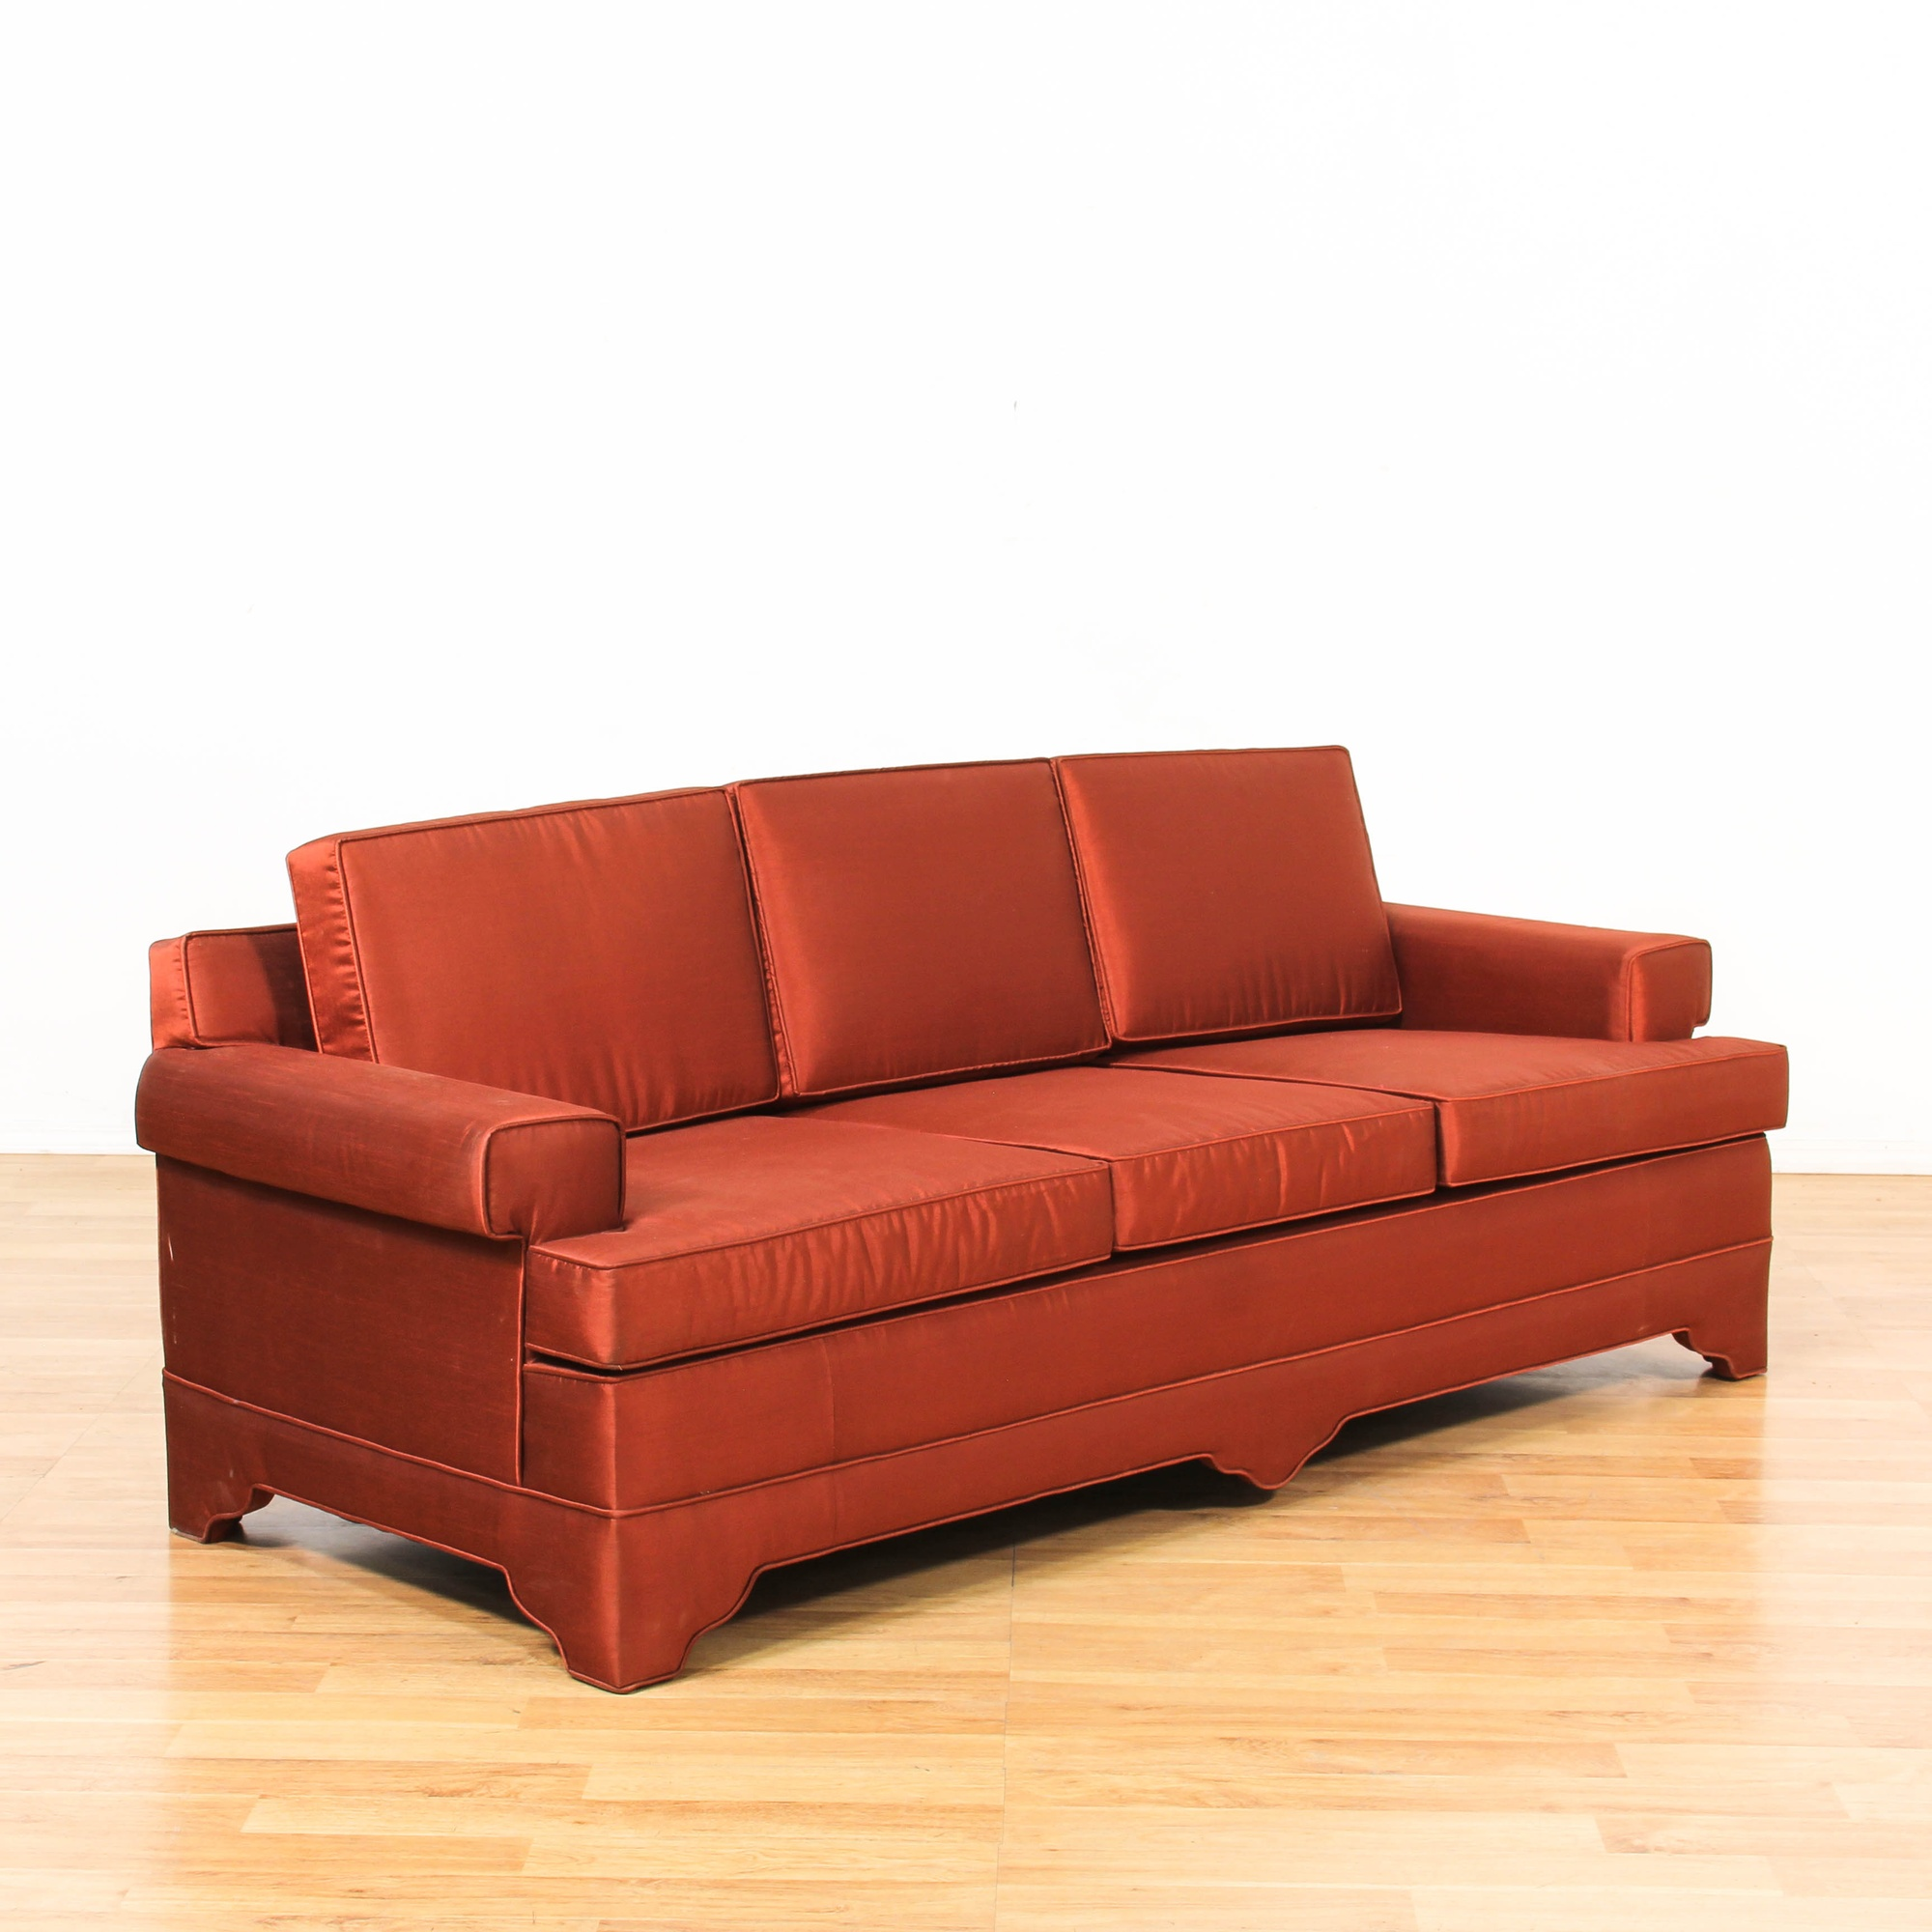 Contemporary Red Sofa   Loveseat Vintage Furniture Los Angeles